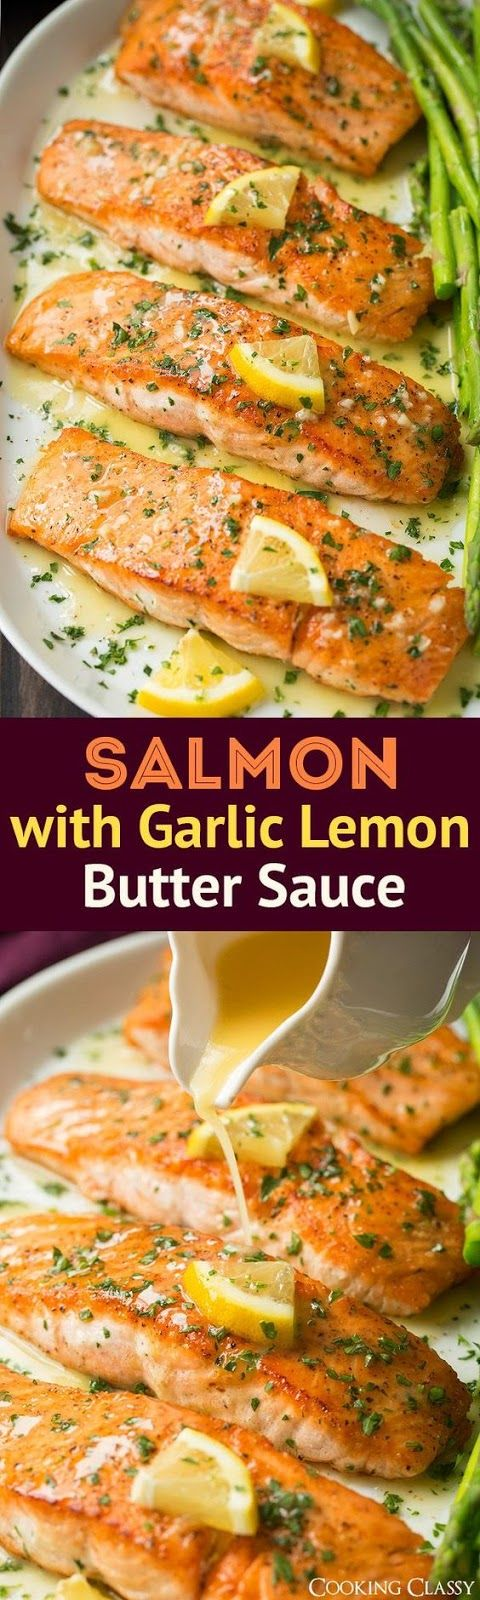 Skillet Seared Salmon with Garlic Lemon Butter Sauce | Food And Cake Recipes